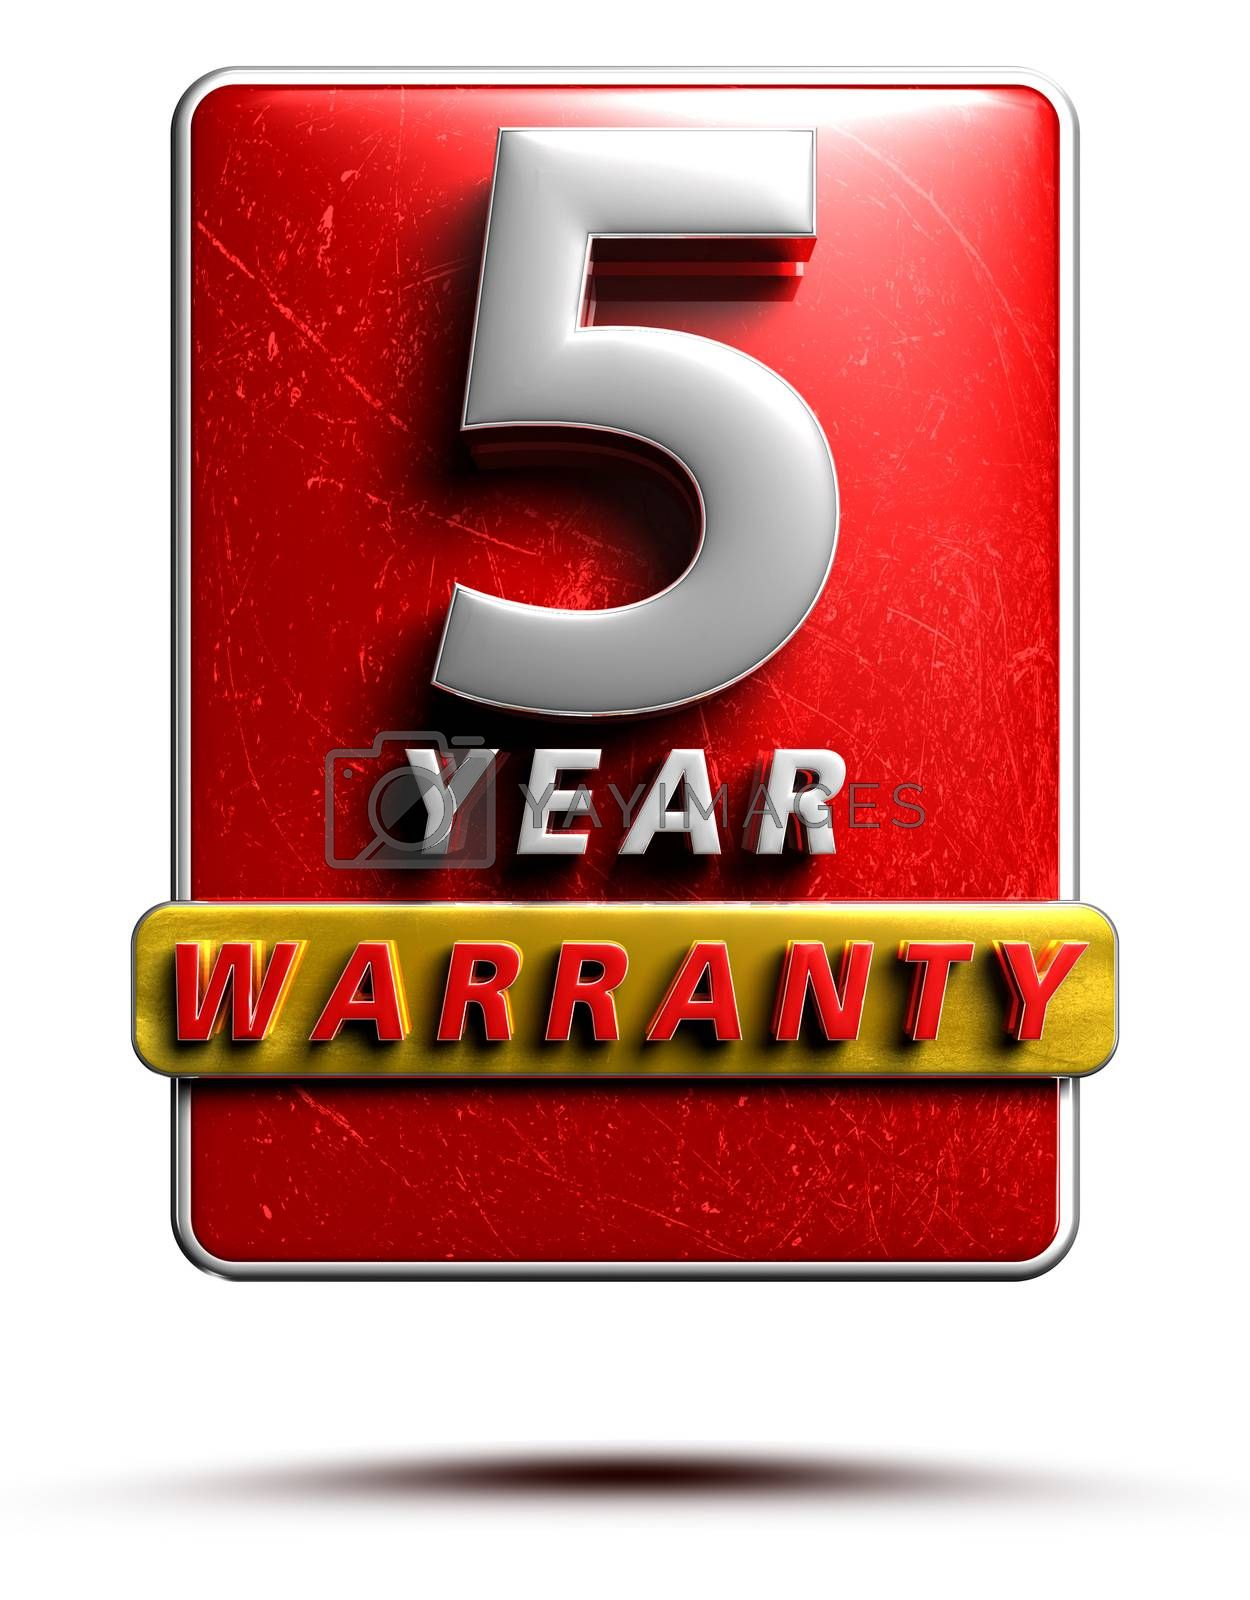 Warranty label 3D illustration 5 years Red Color Numbers in stainless steel Isolated on a white background. (With Clipping Path).